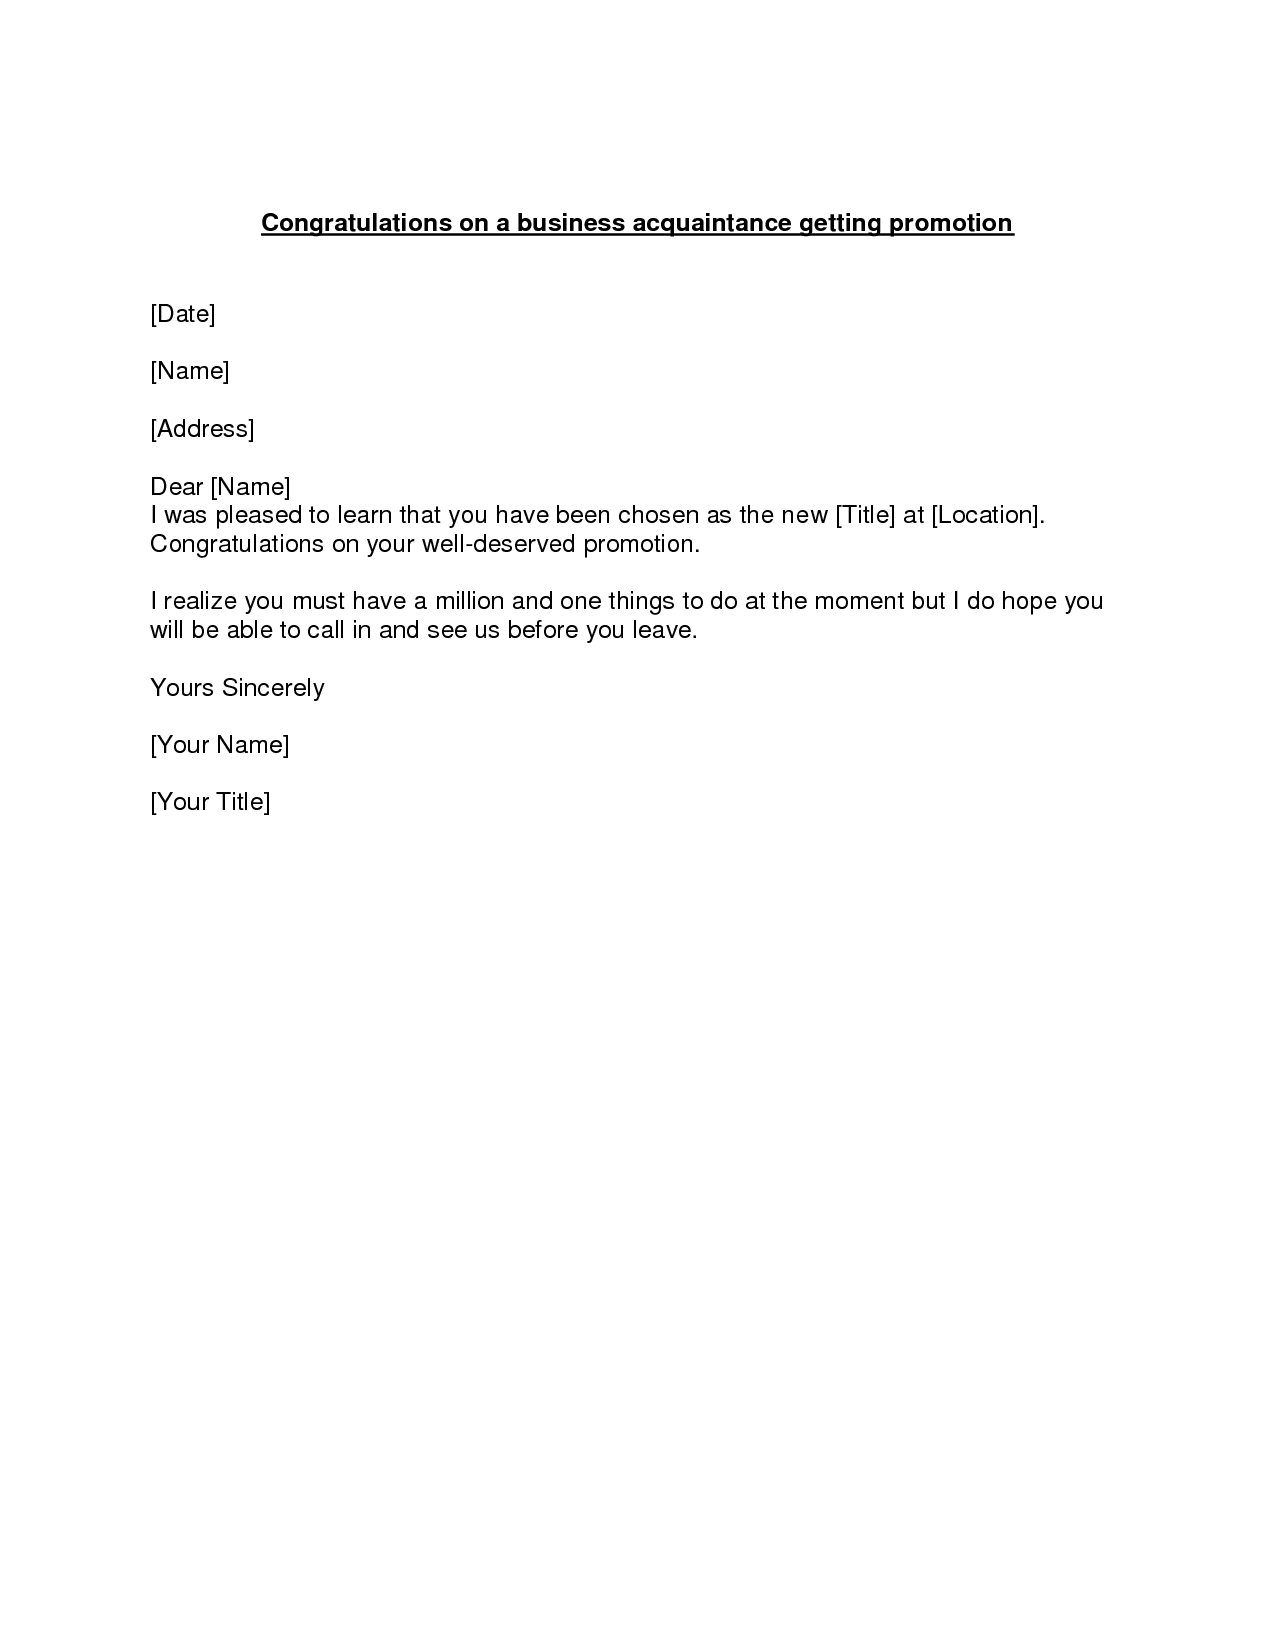 Job Promotion Letter Sample Elegant Congratulatory Letter for Job